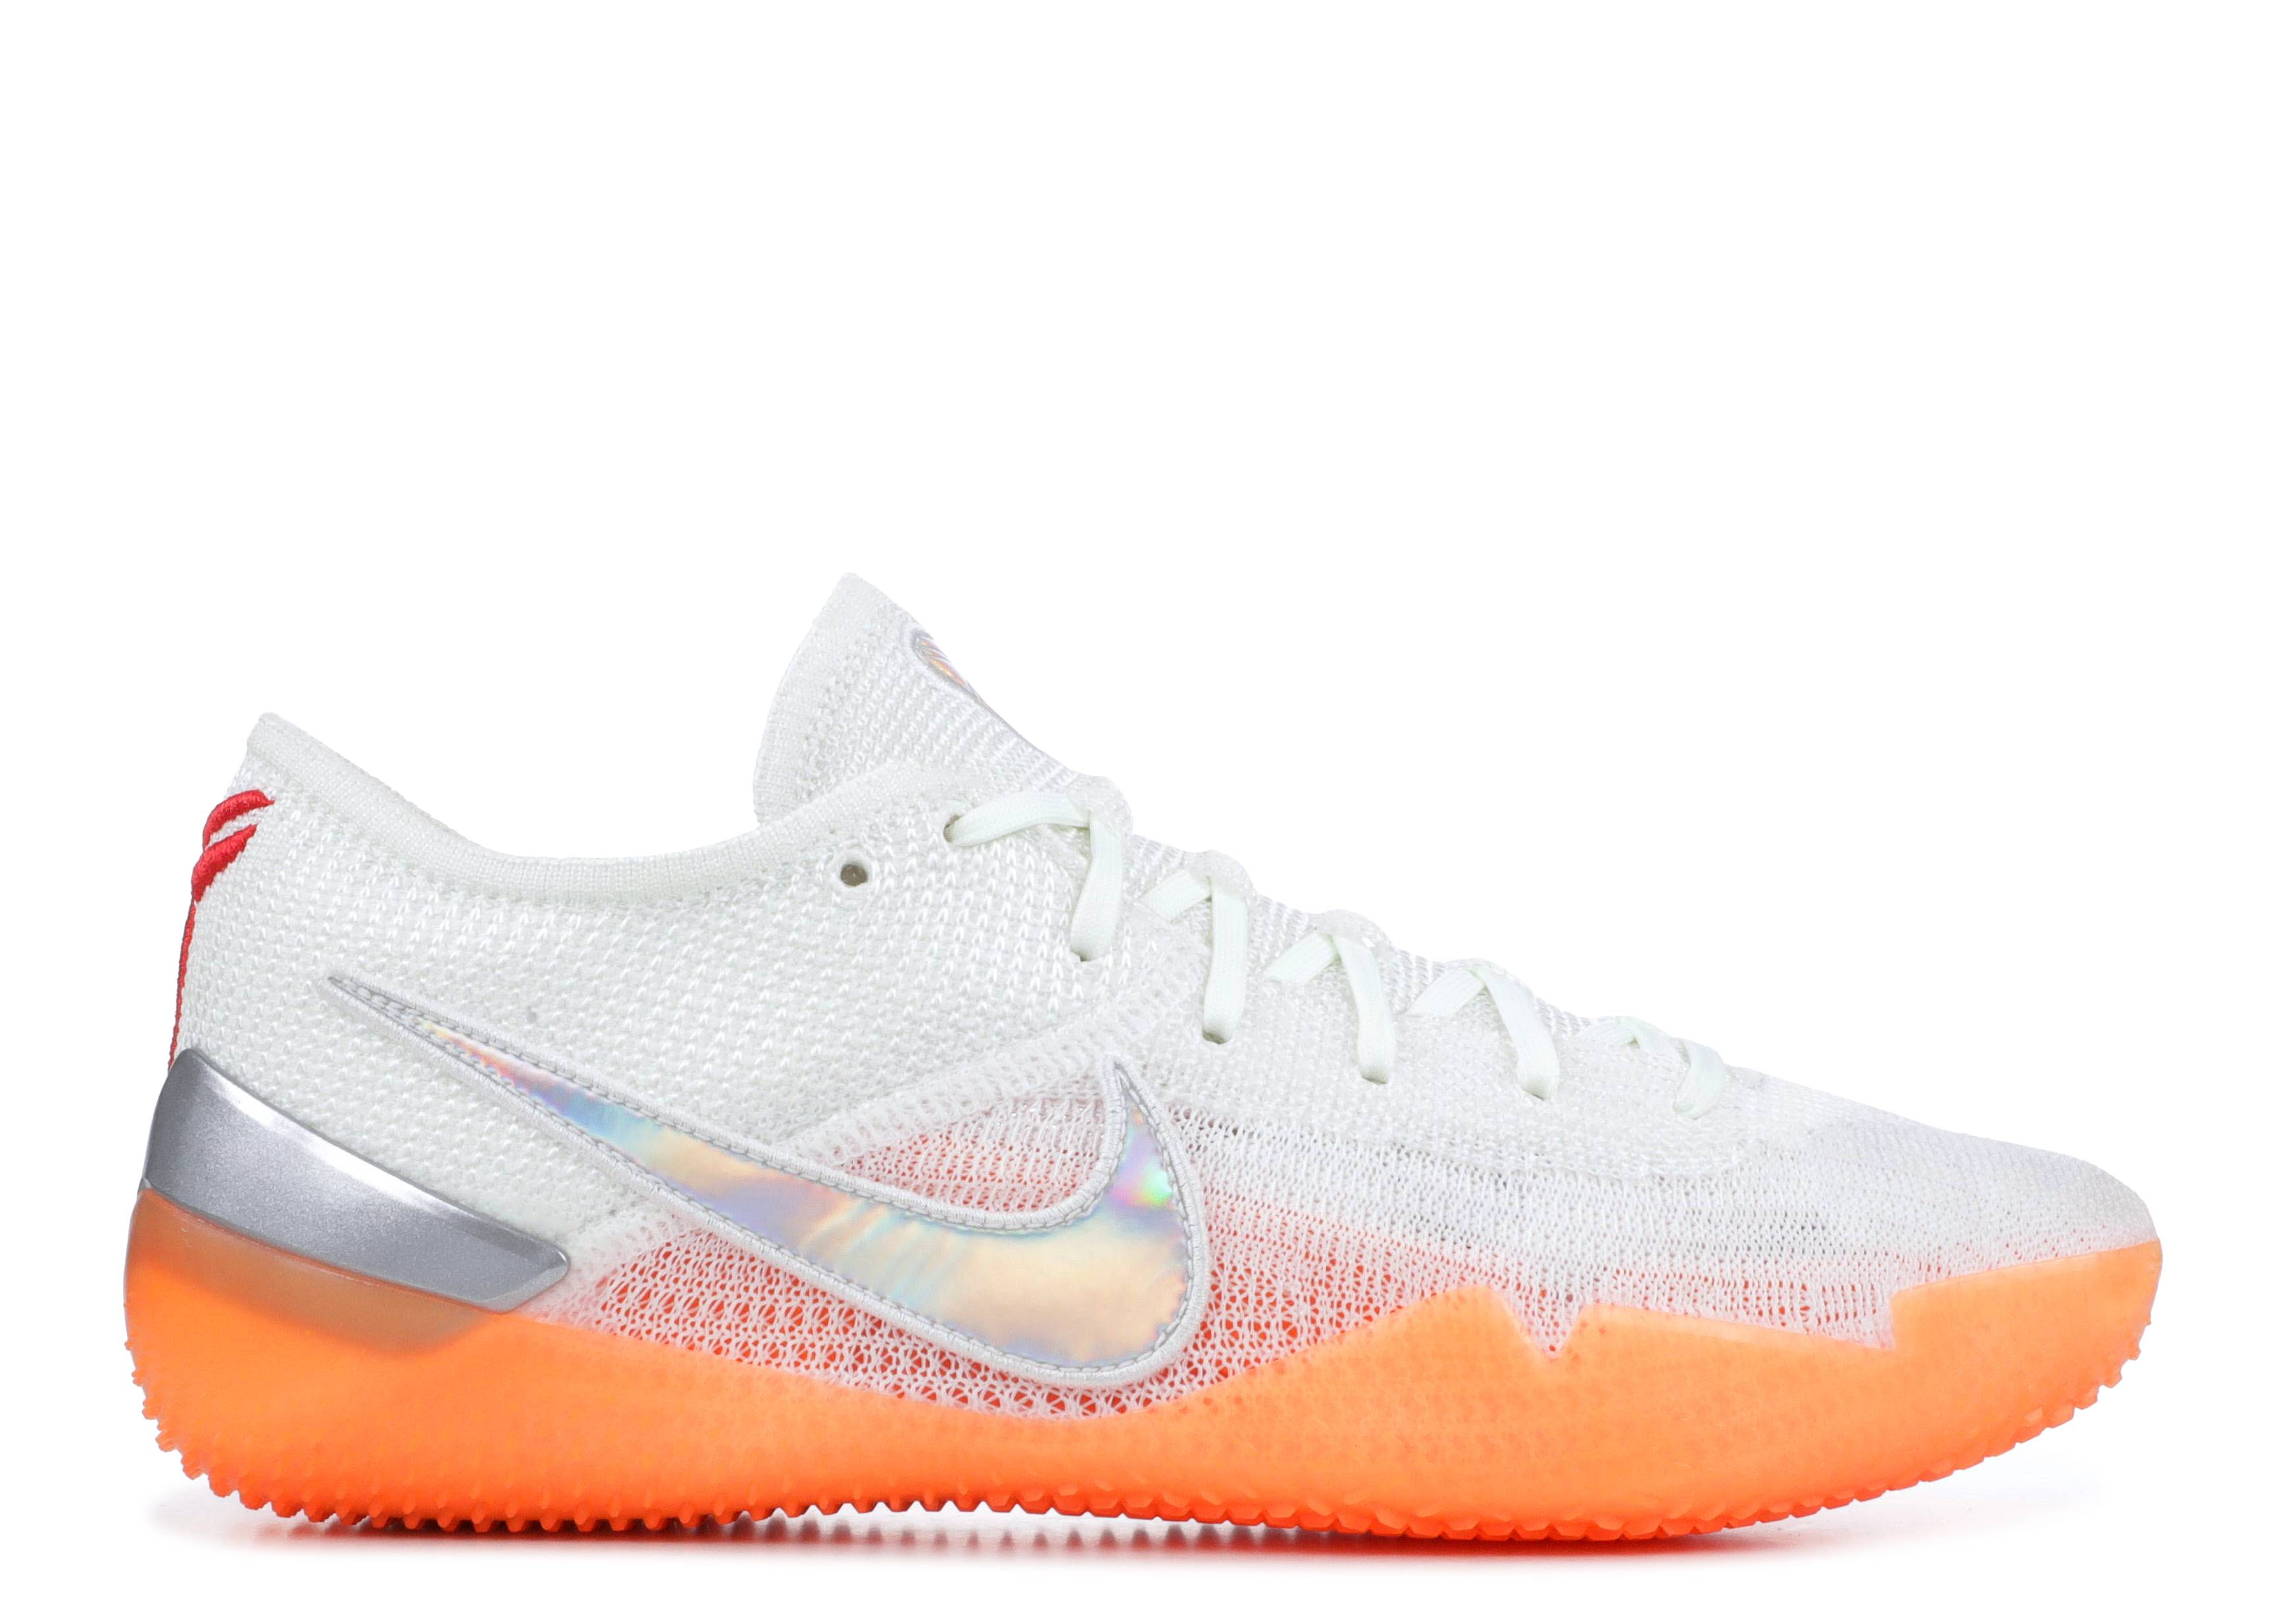 Ciencias Mes oxígeno  Kobe Ad Nxt 360 - Nike - AQ1087 100 - white/black-infrared 23-volt | Flight  Club